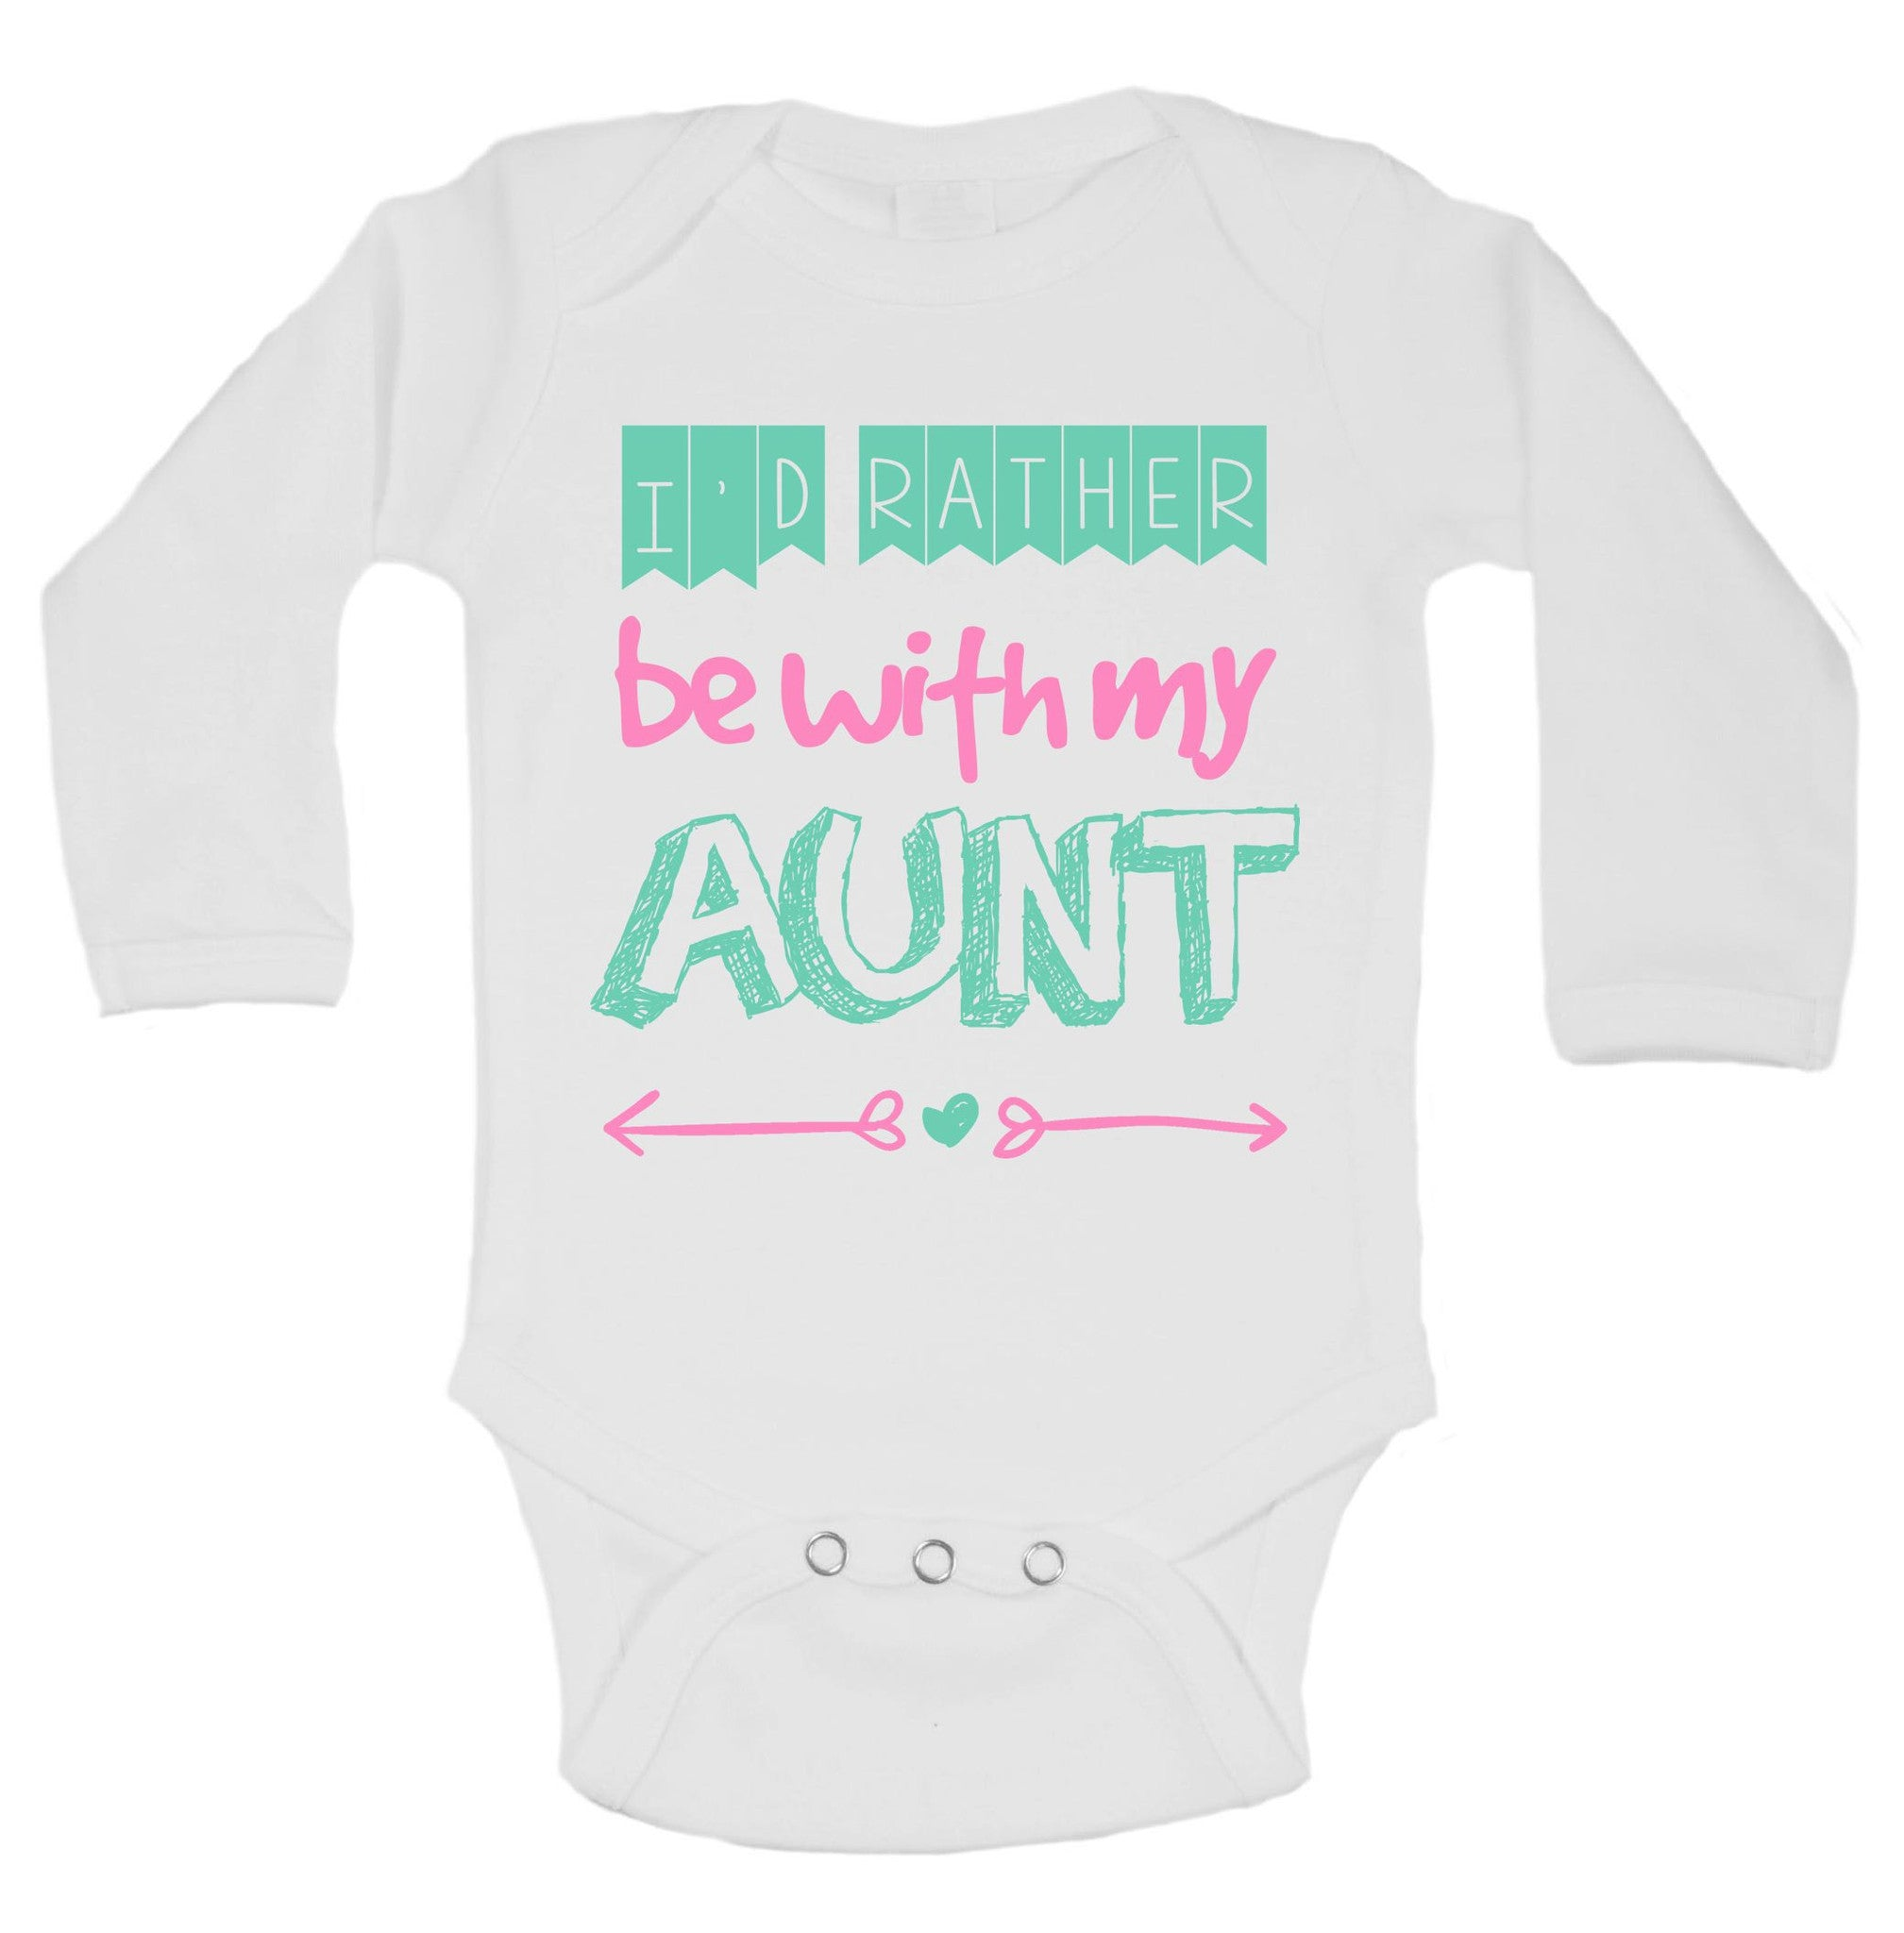 I'd Rather Be With My Aunt Funny Kids Onesie - B121 - Funny Shirts Tank Tops Burnouts and Triblends  - 1